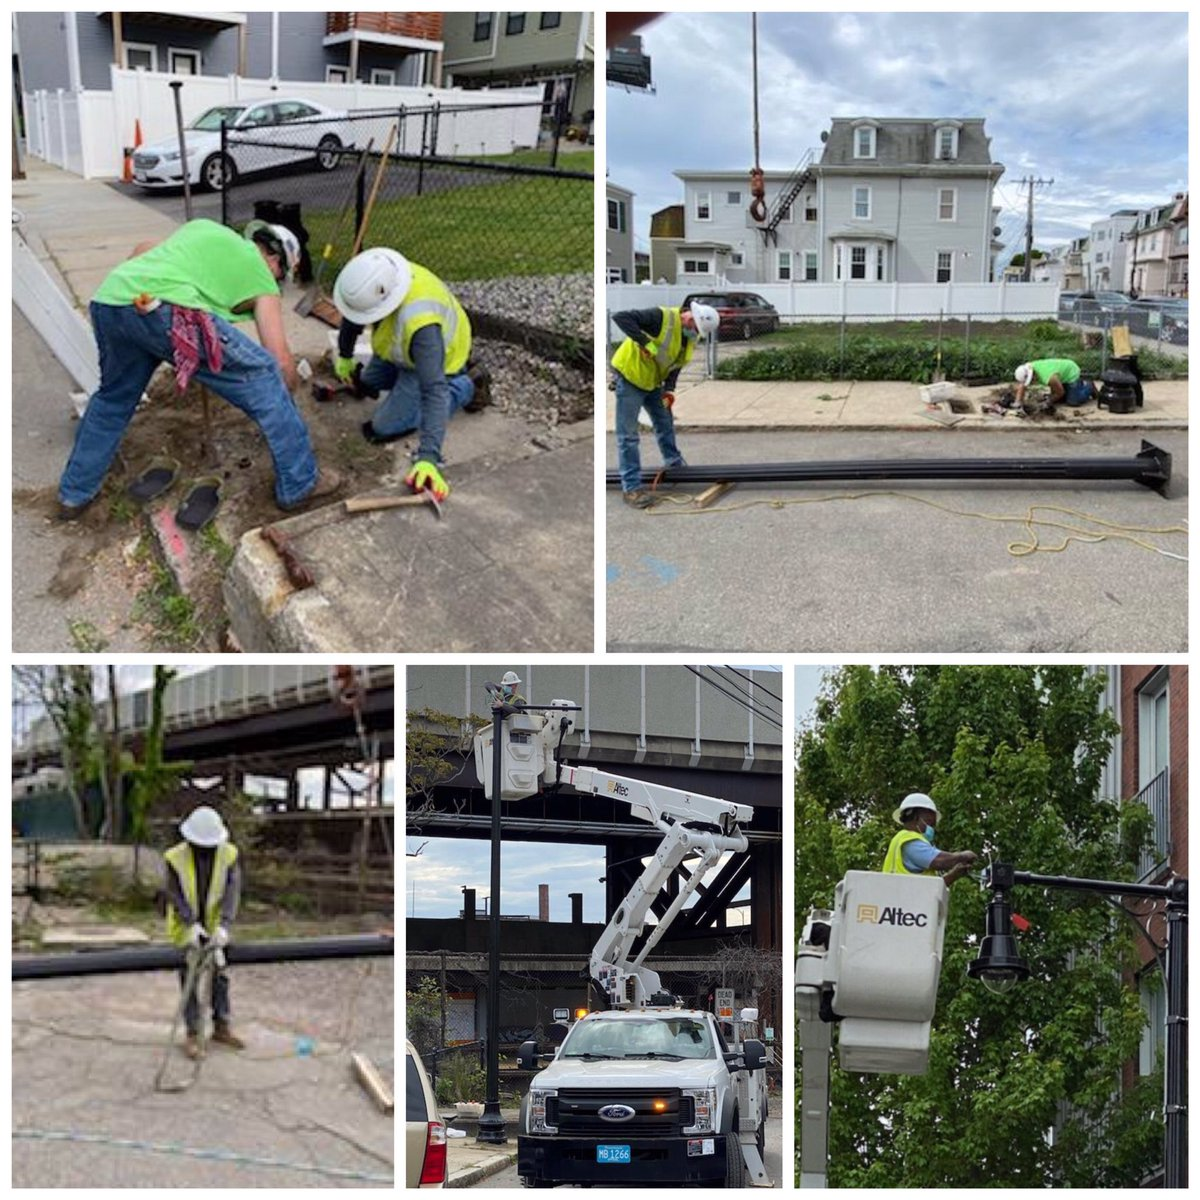 PWD's Street Lighting Division was  busy making lighting upgrades on Perkins St. in #Charlestown. Pics below of crews installing decorative pendant fixtures.pic.twitter.com/mHDcpfjoTf